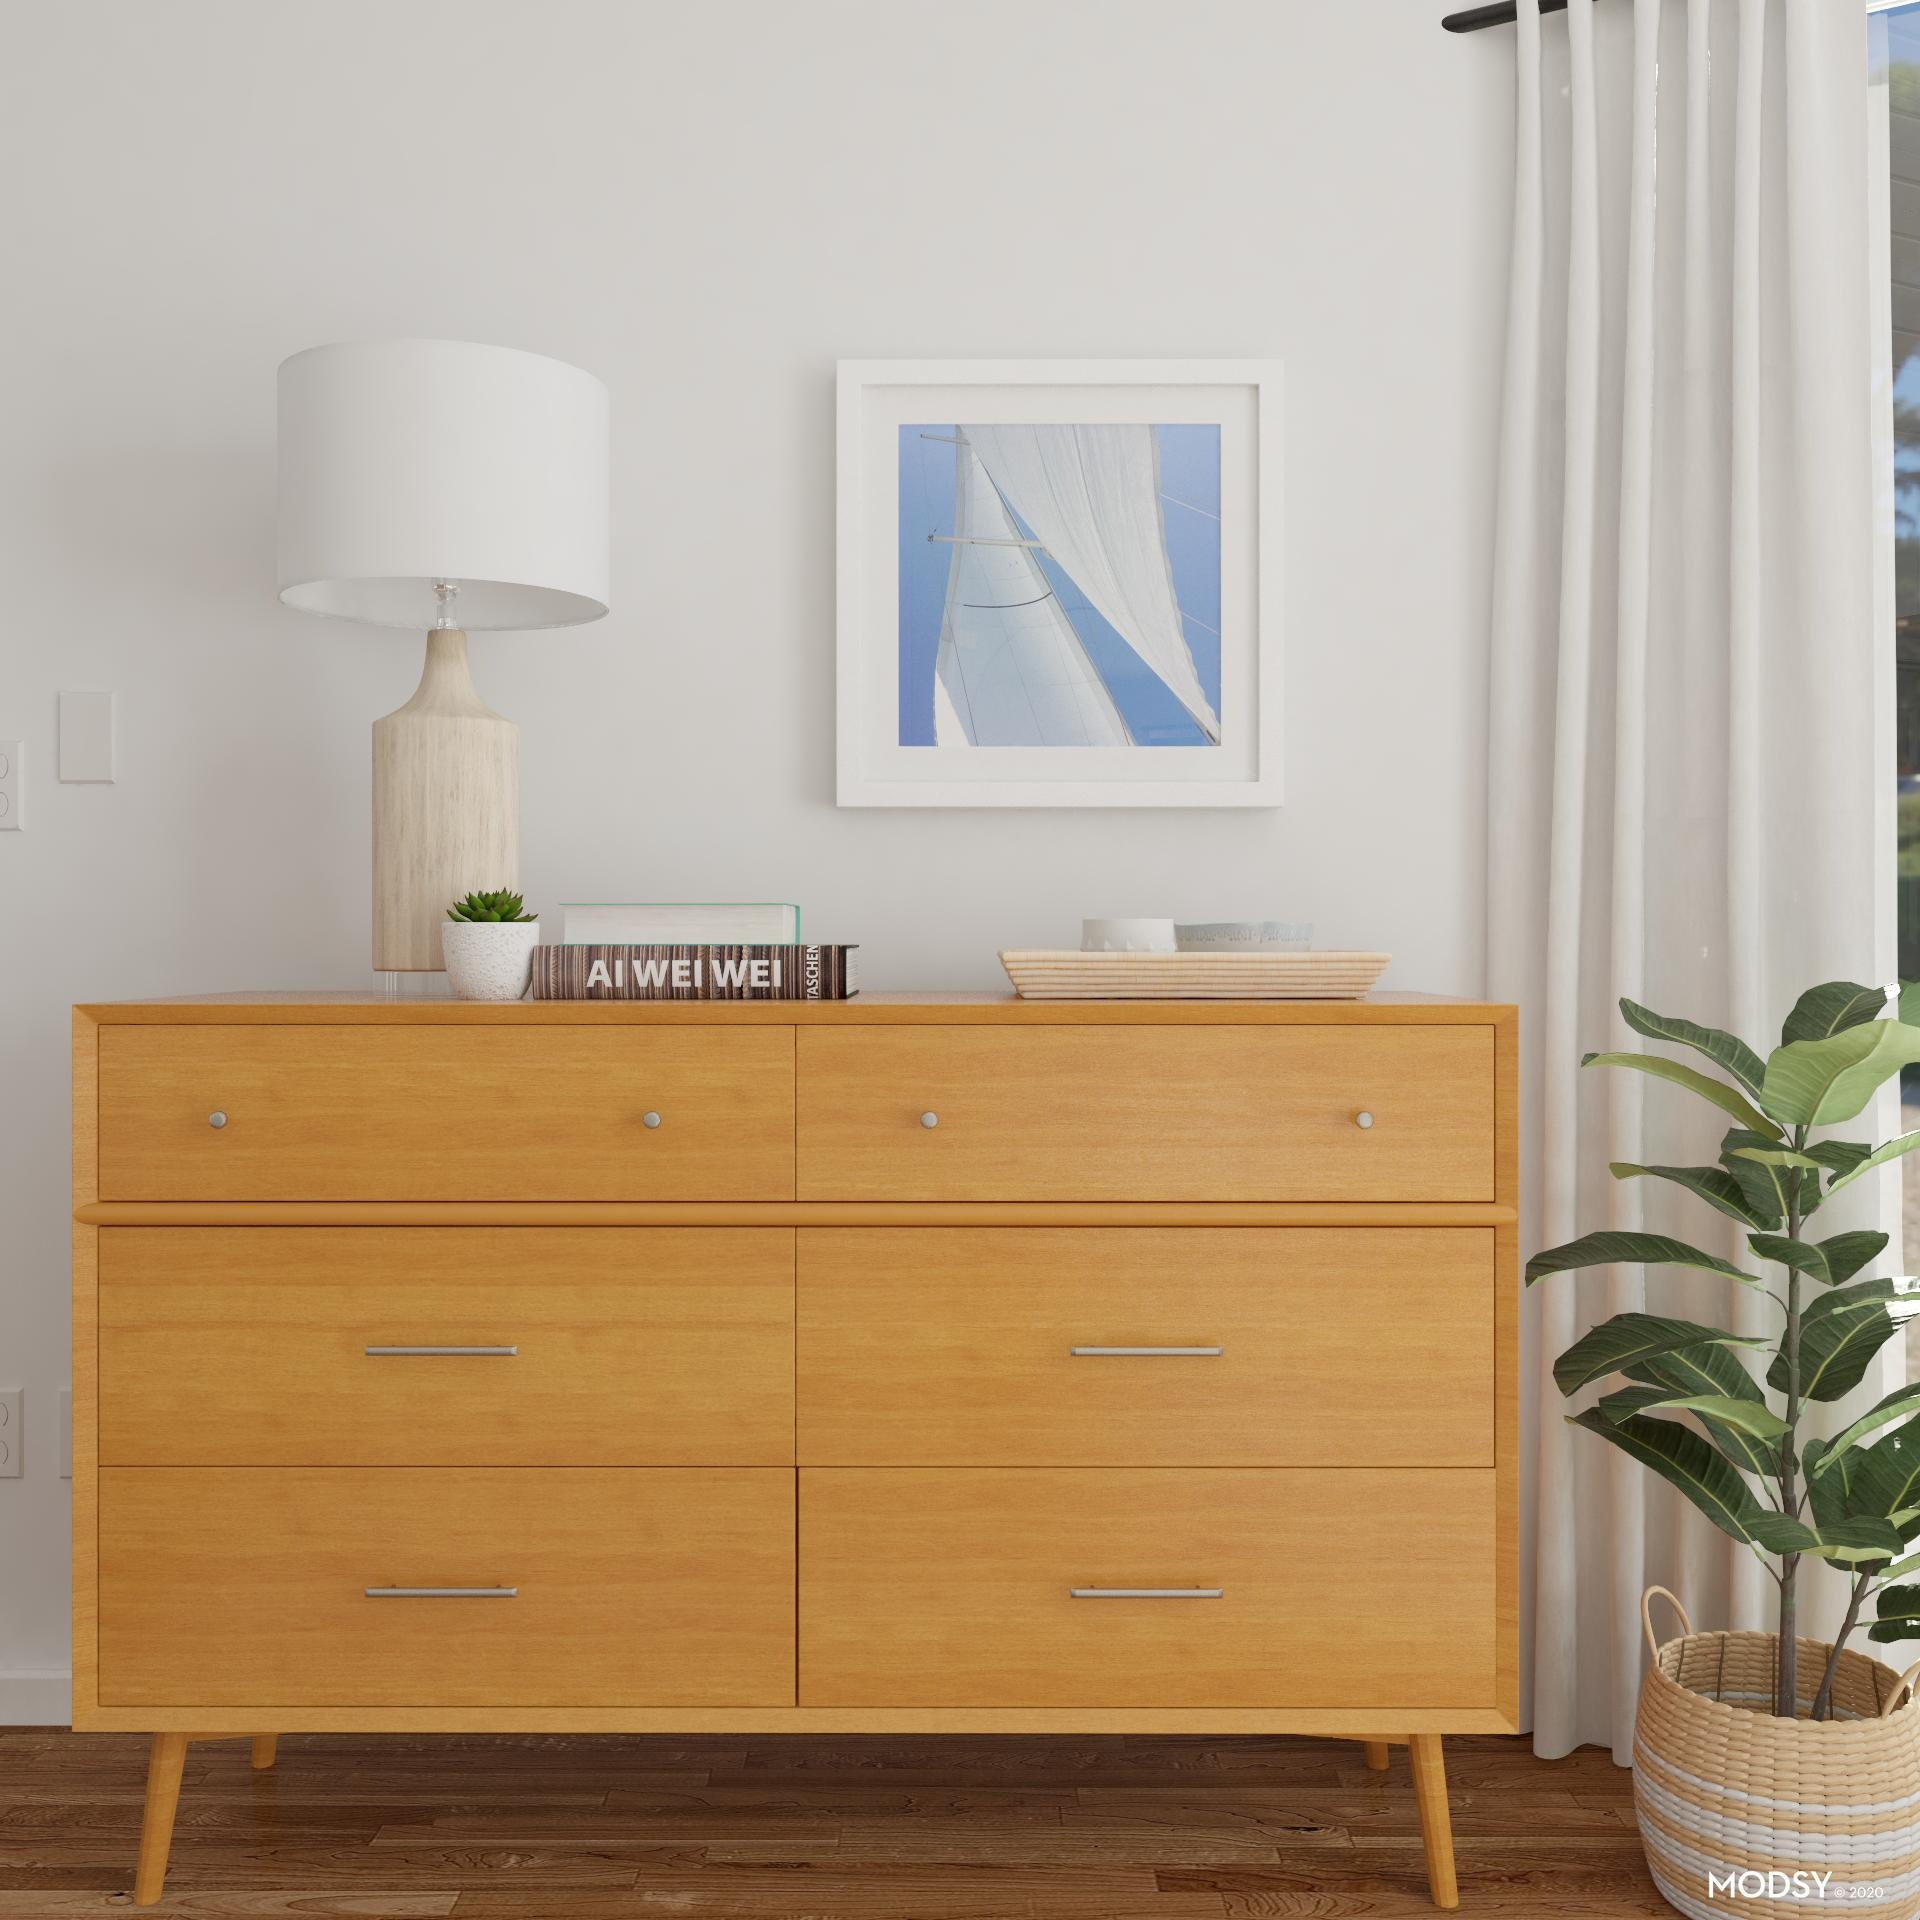 Mid Century Modern Dresser In A Blonde Wood Mid Century Style Bedroom Design Ideas